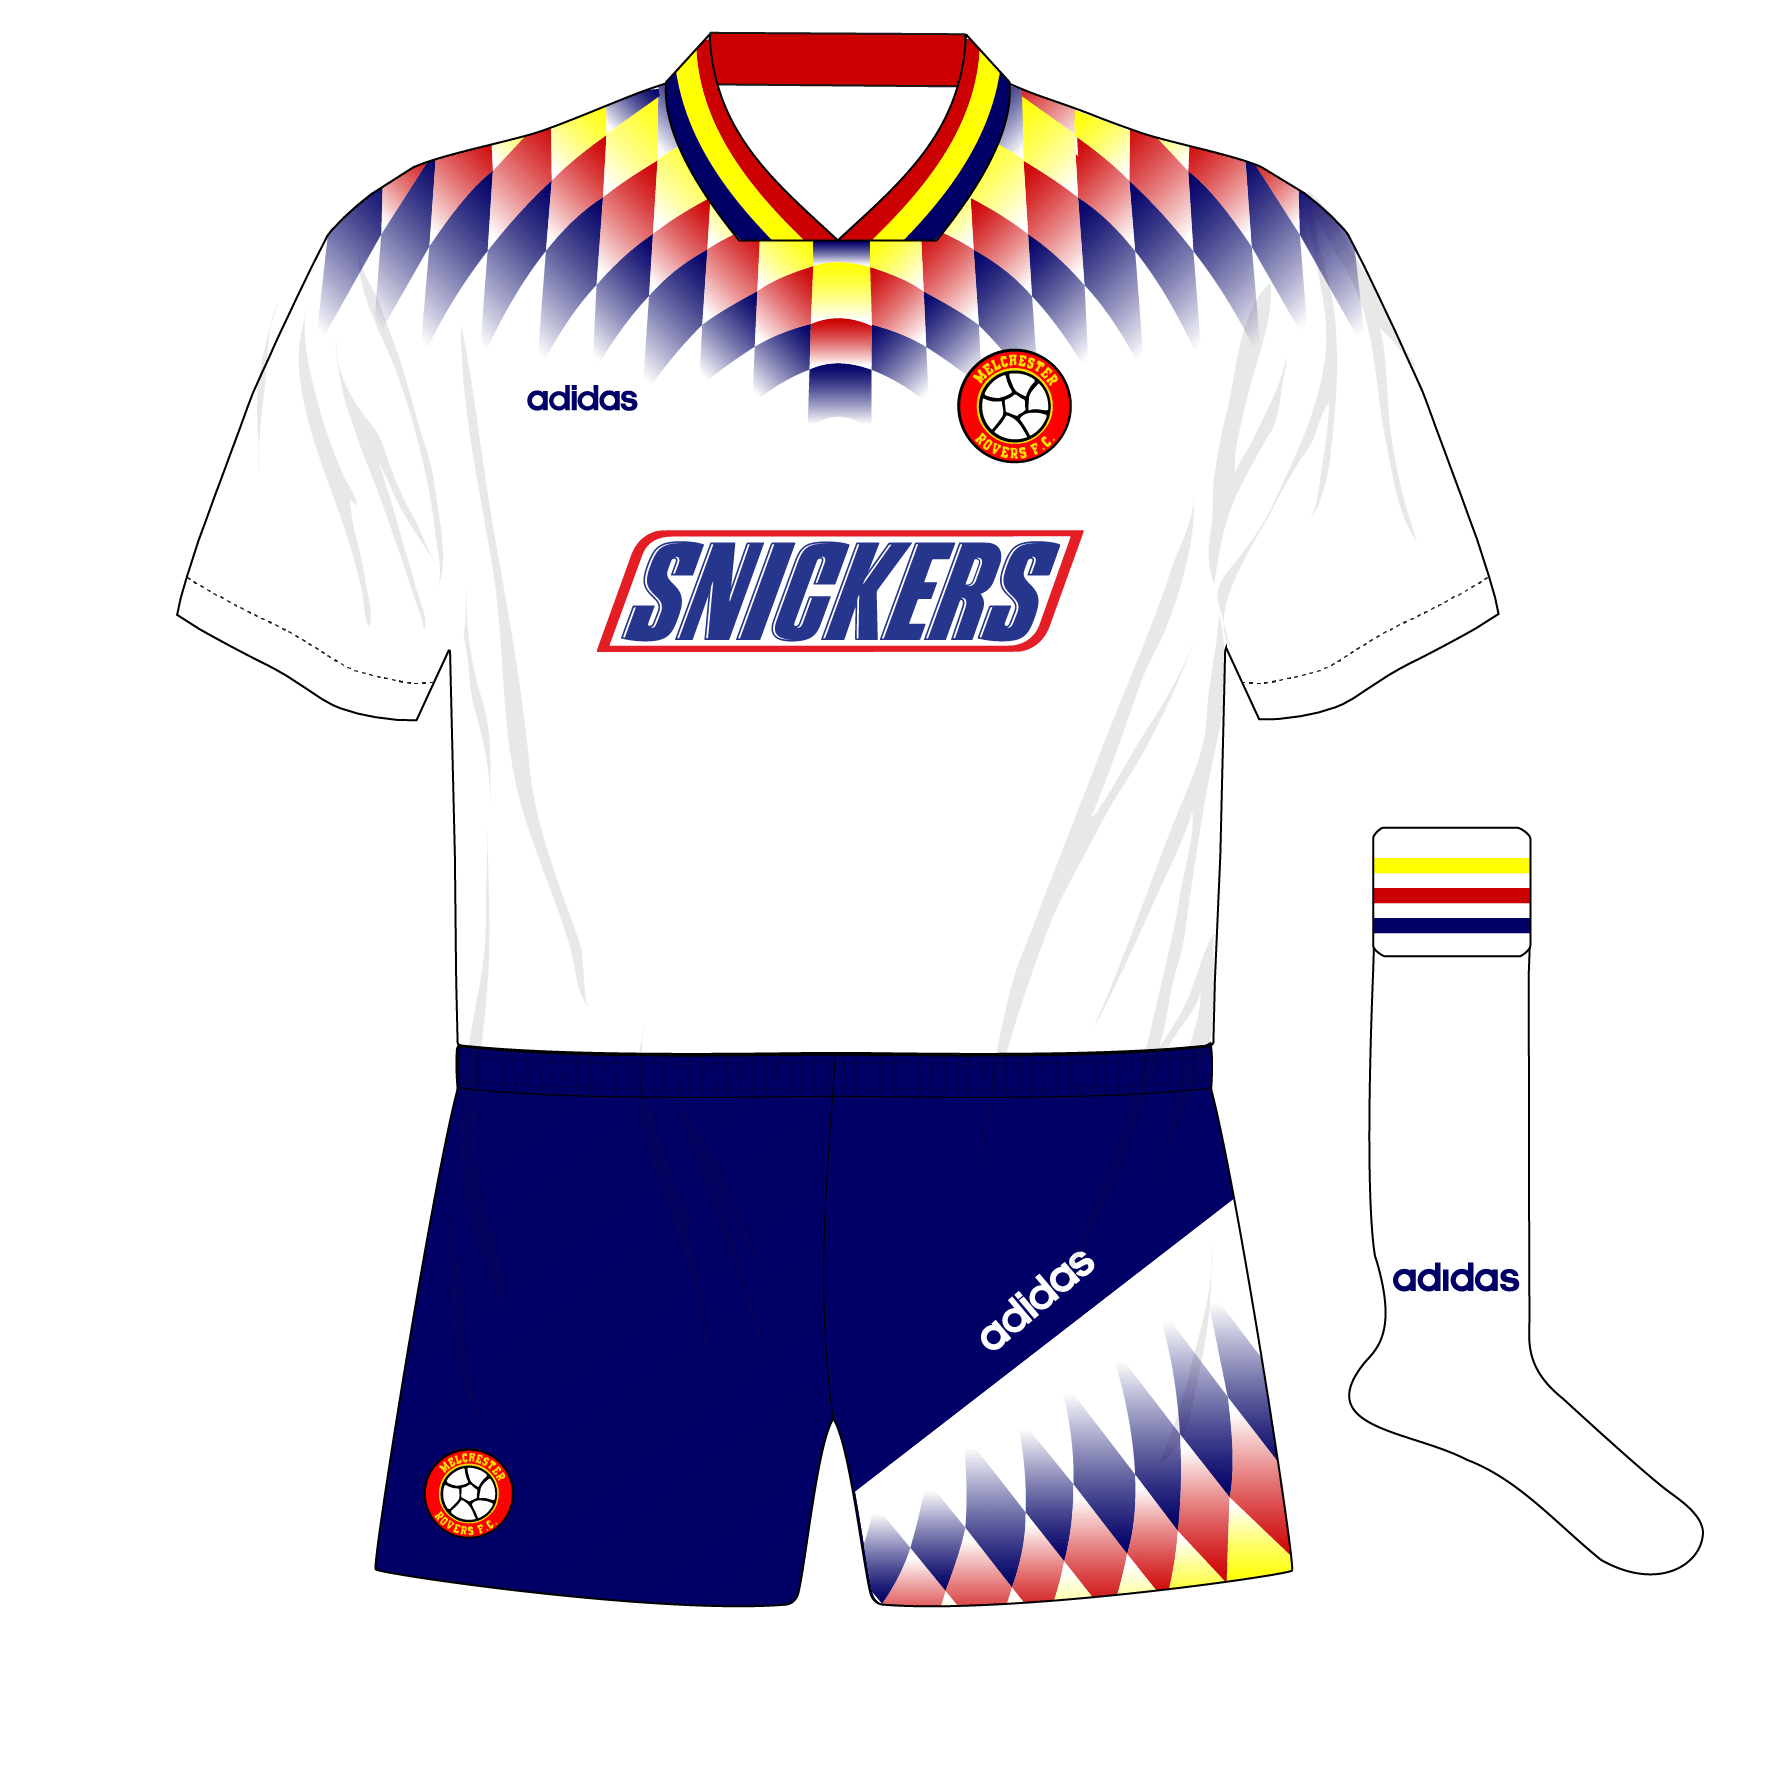 Melchester-Rovers-adidas-fantasy-1994-1995-away-Roy-of-The-Rovers-01-01